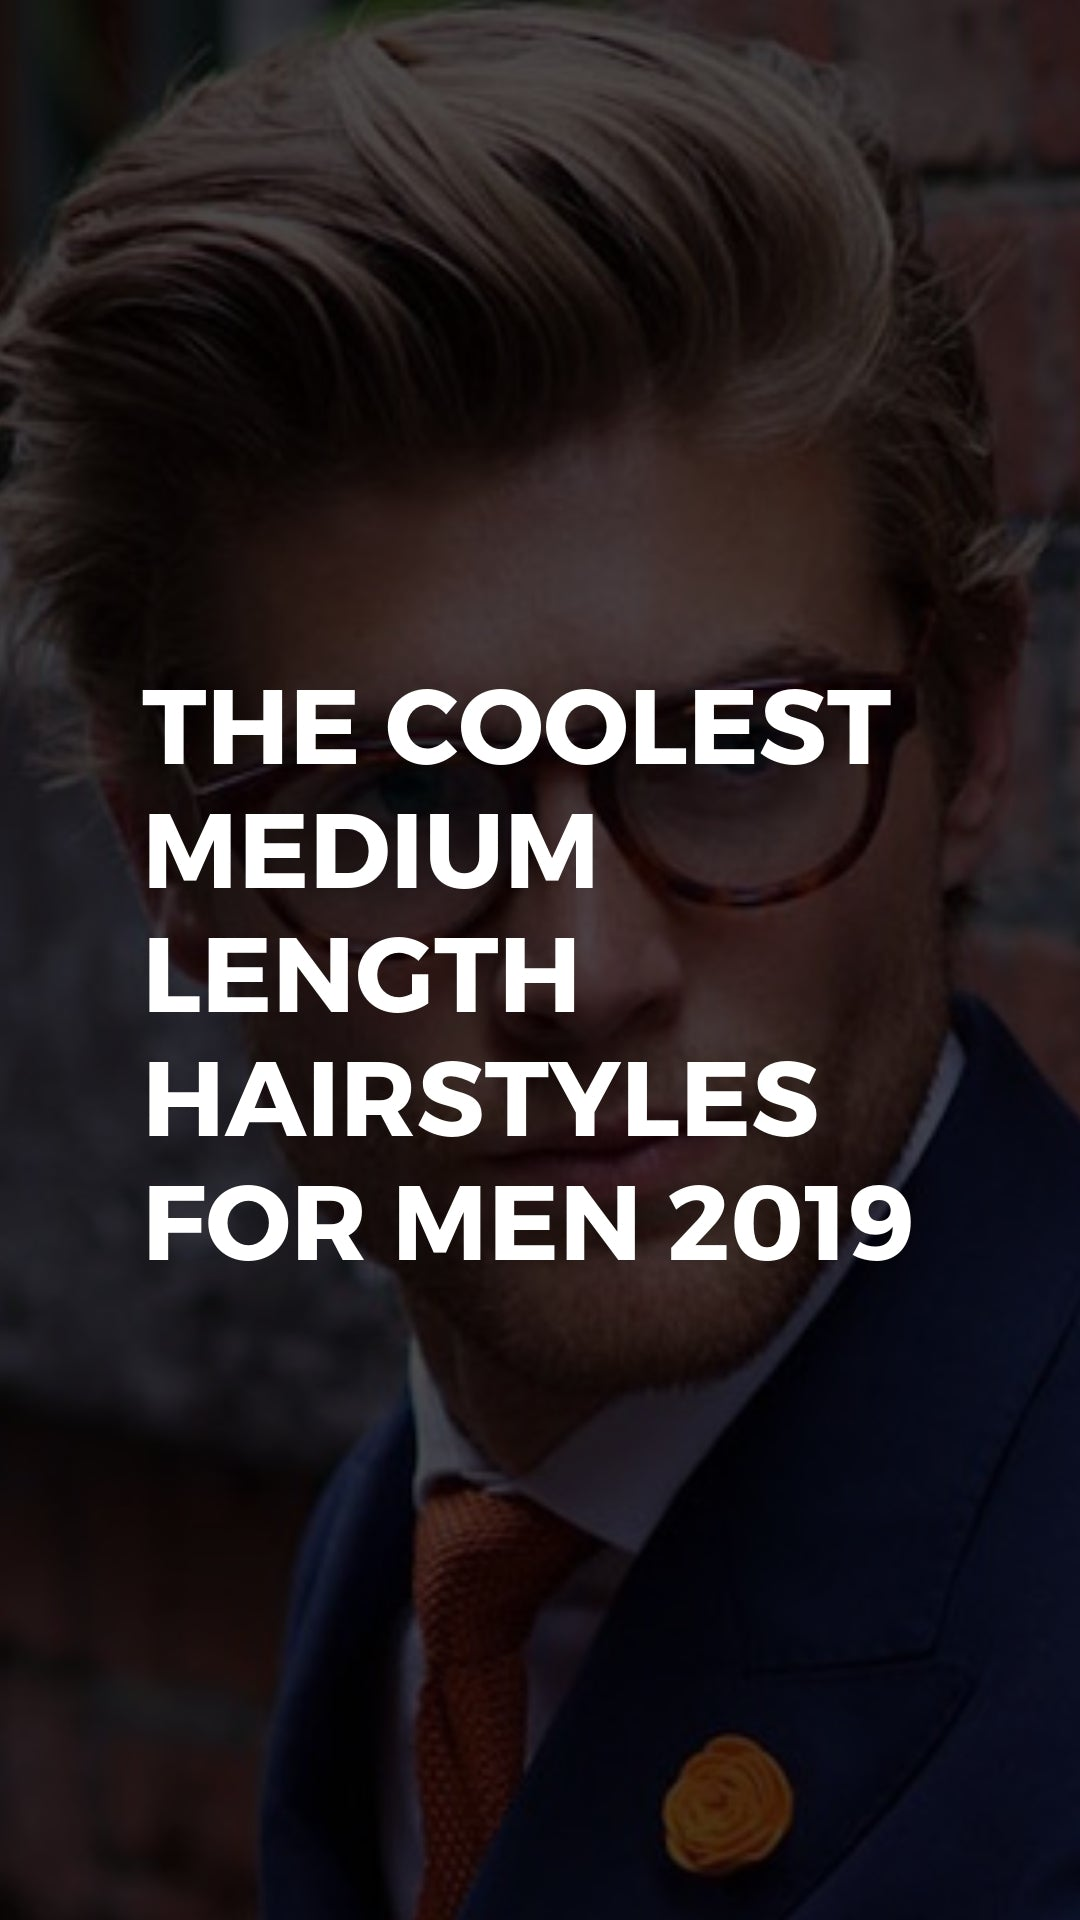 The Coolest Medium Length Hairstyles For Men 2019 ...